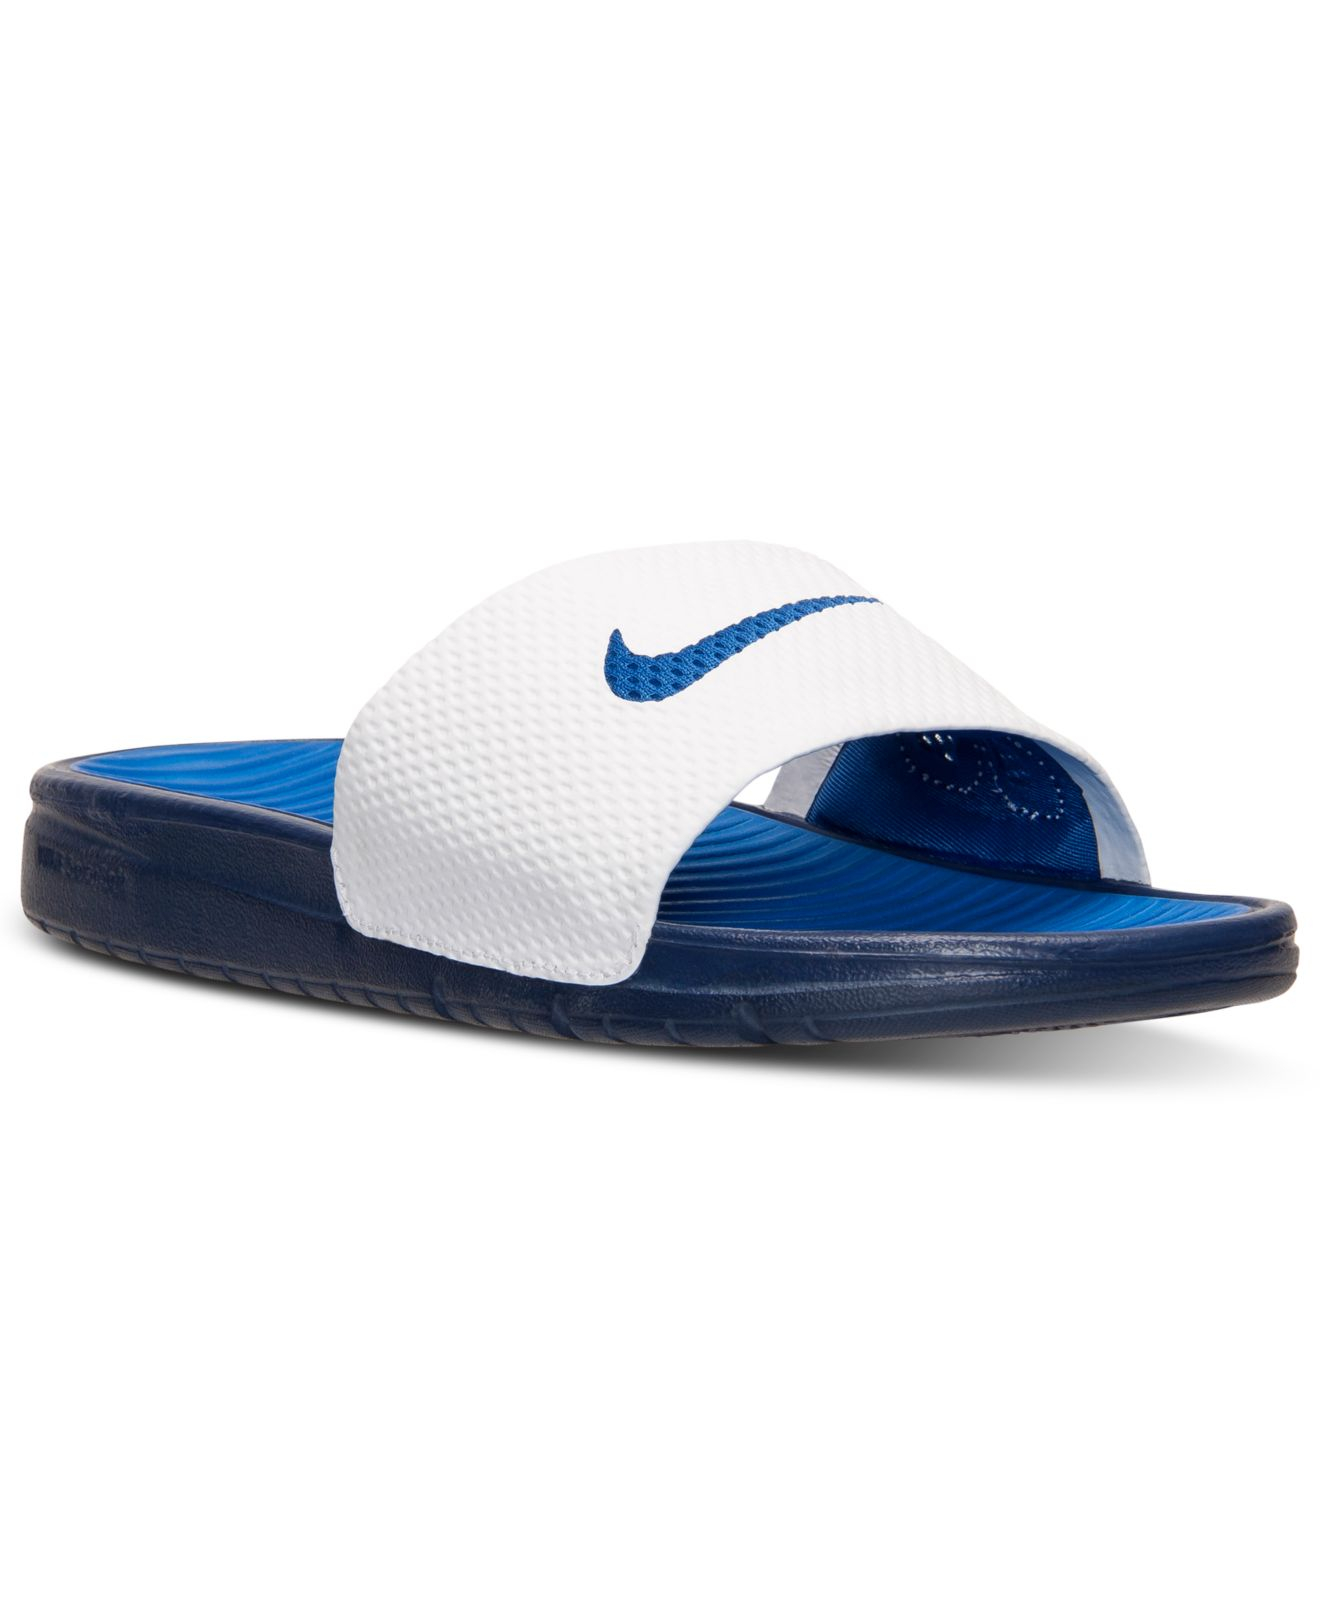 3a68449cd96 ... inexpensive lyst nike mens solarsoft slide sandals from finish line in  blue for men cd723 7d844